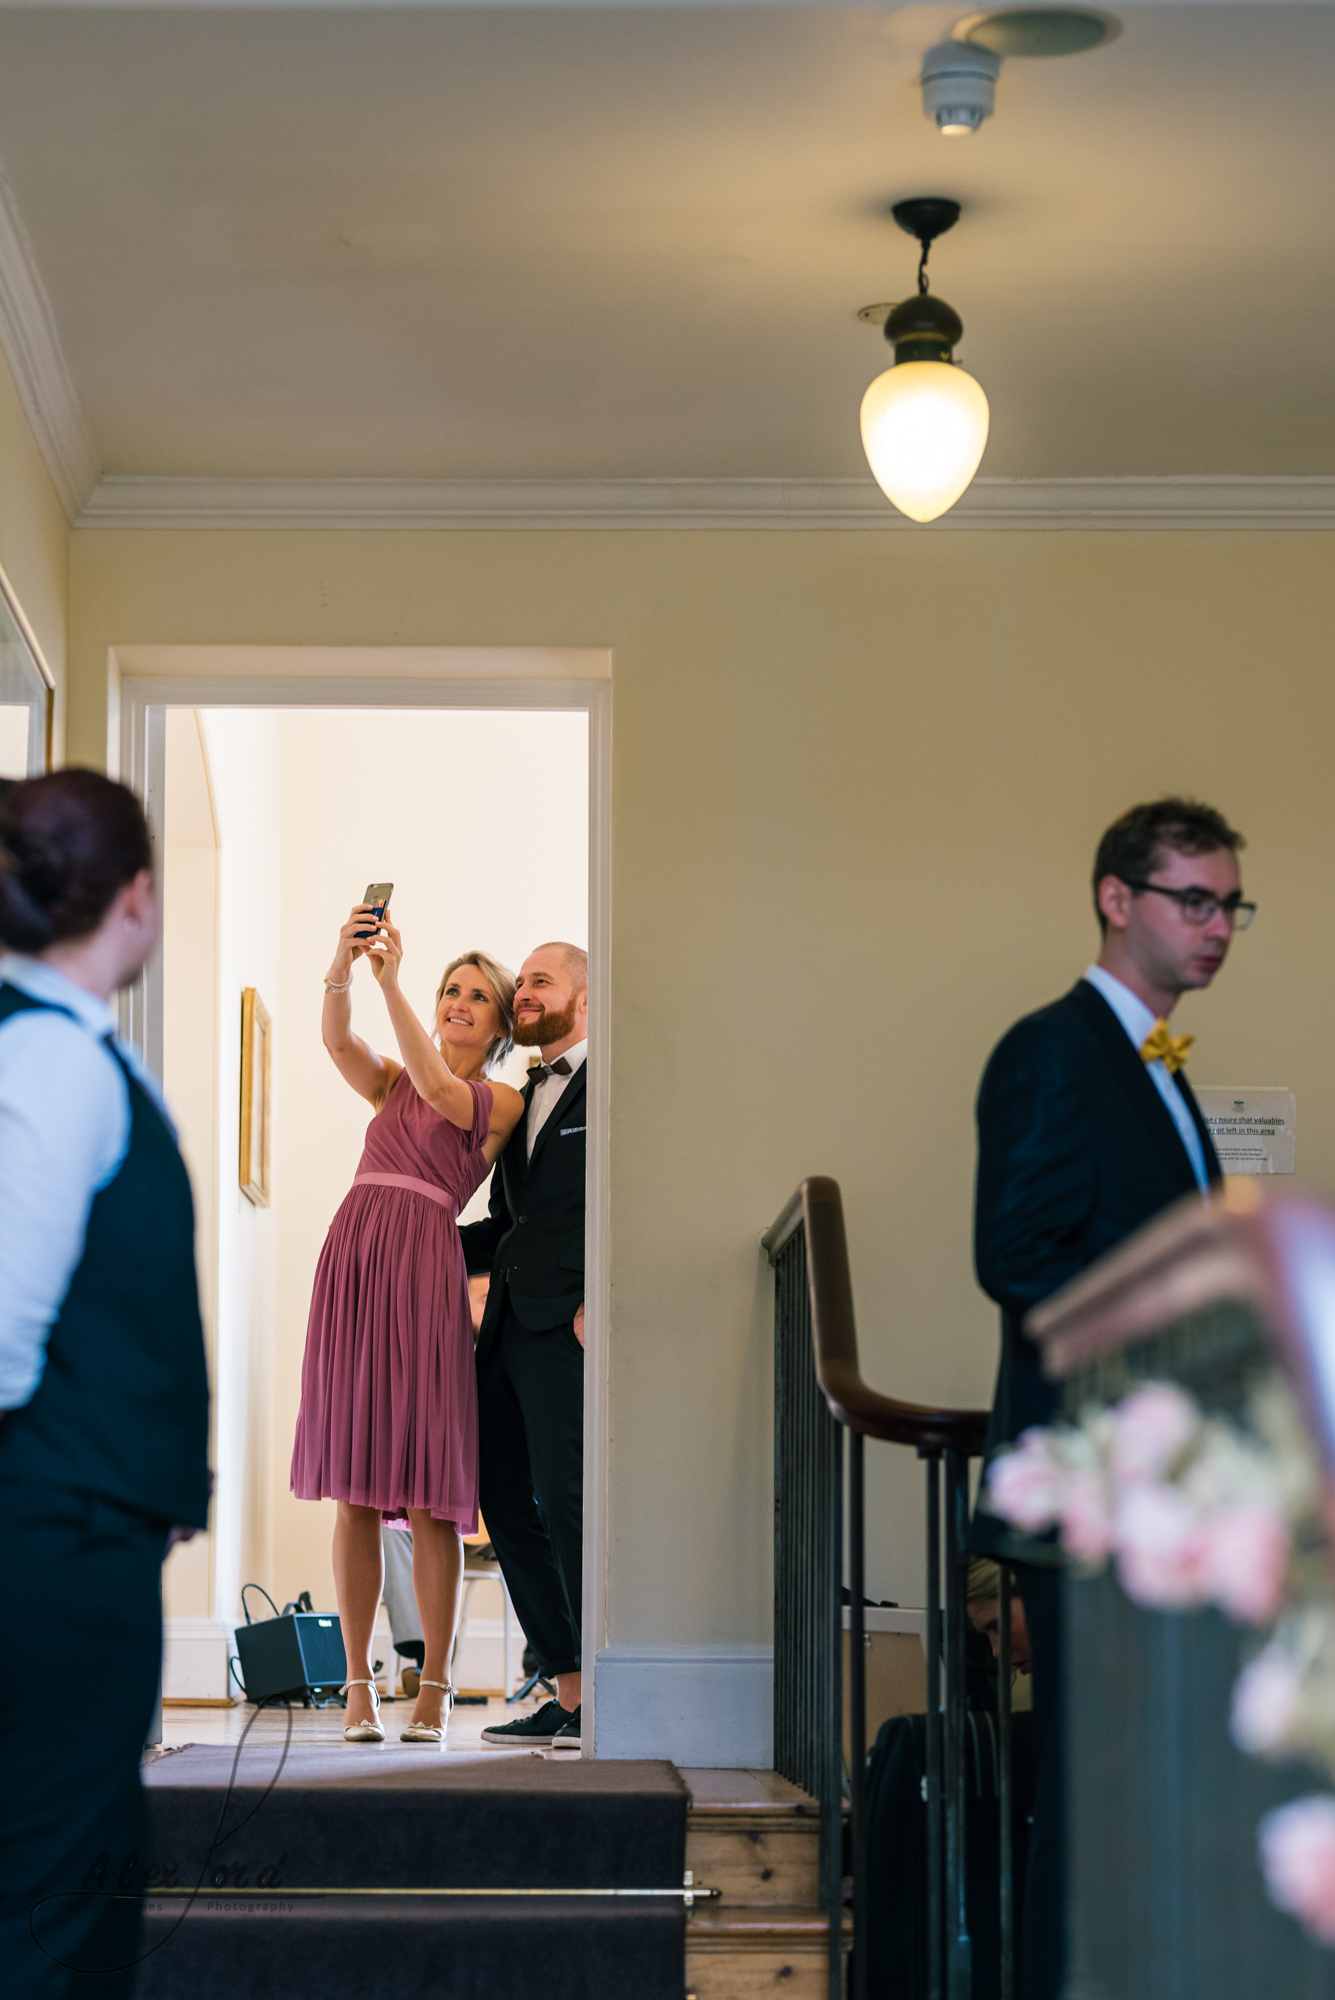 Two wedding guests wearing pink and navy blue take a selfie in the doorway of the wedding venue